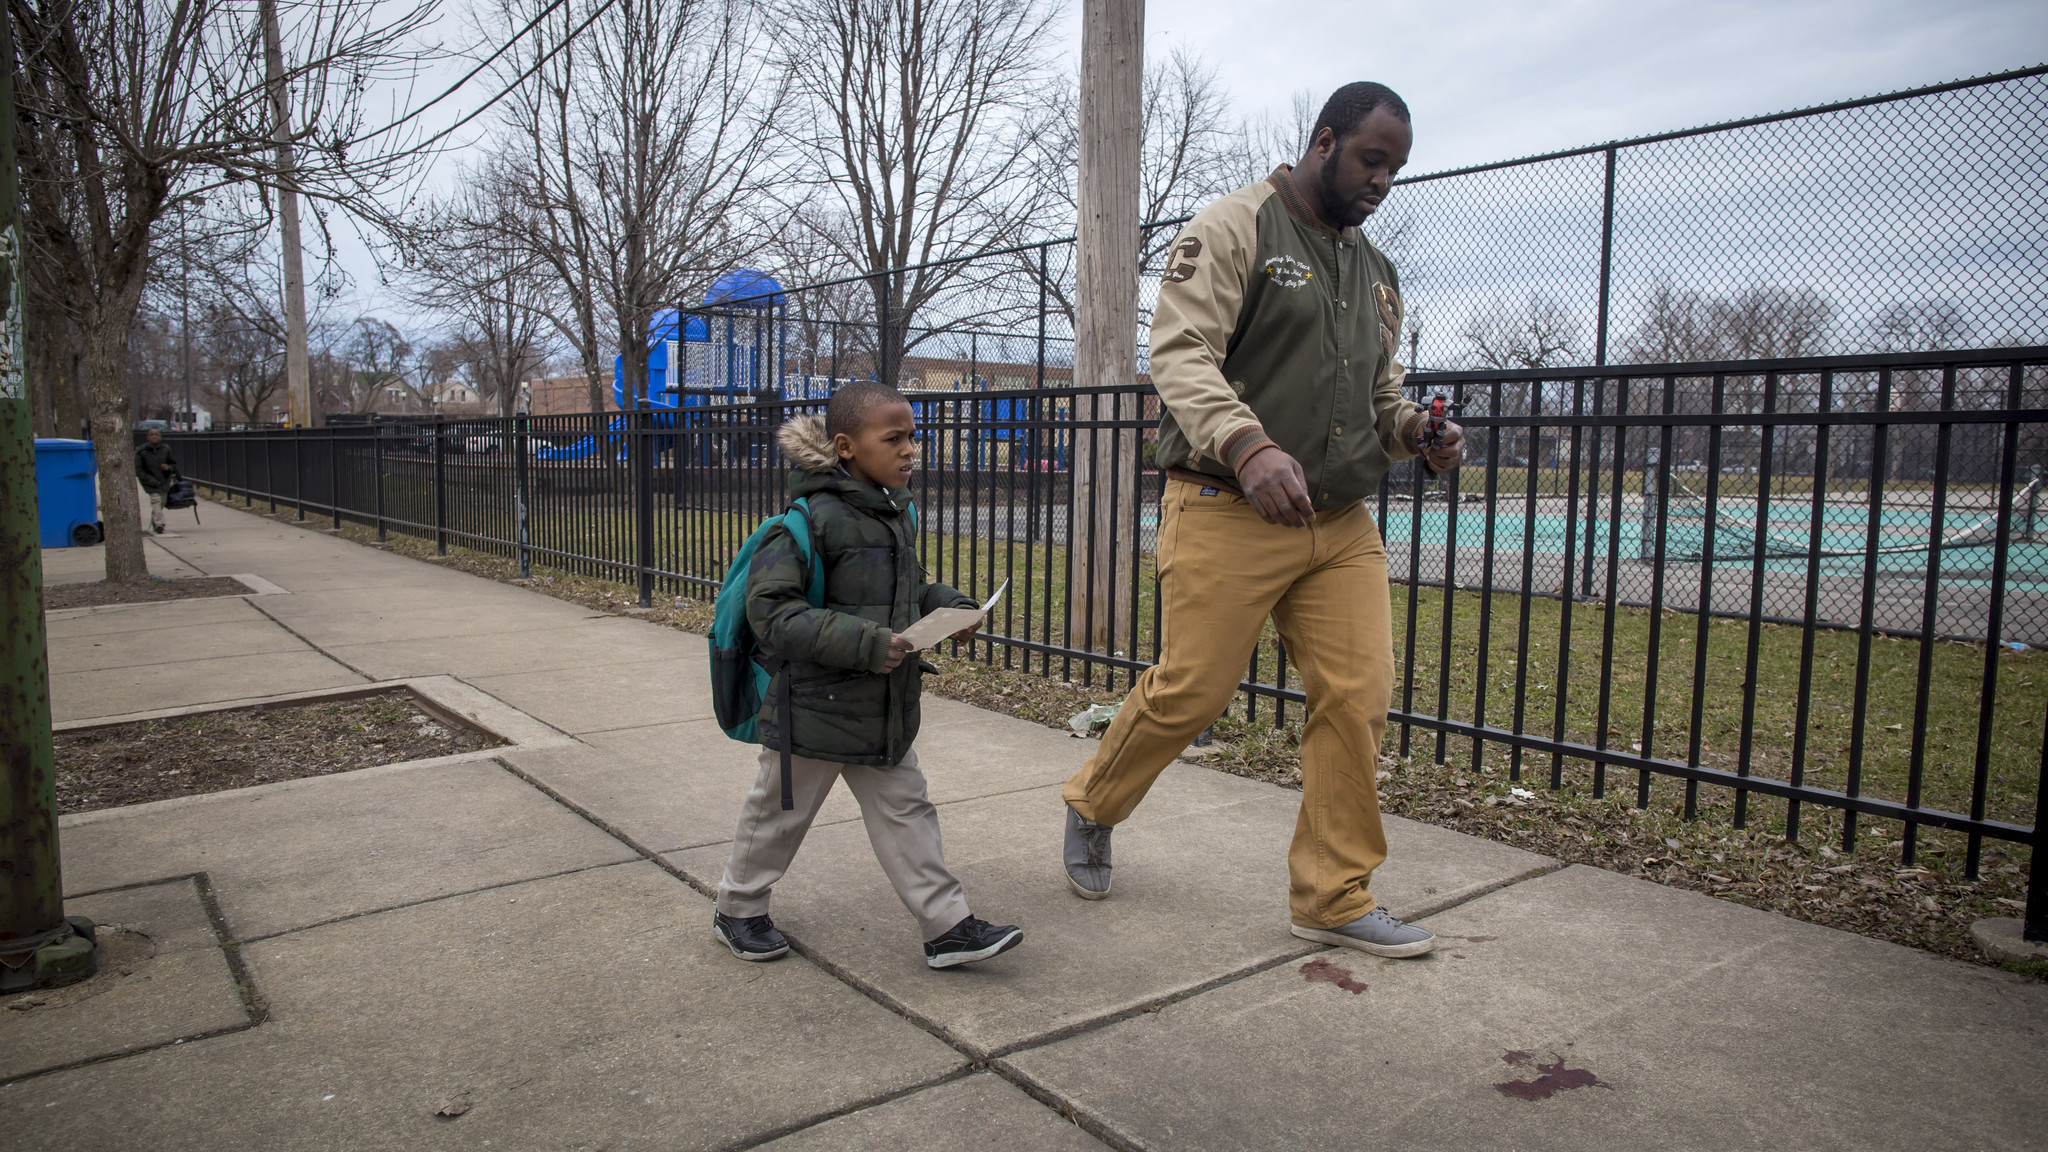 Home people men a sad young man walking home from work -  Christopher Charles Weaver Home From Westcott Elementary School After The 3 45 P M Final Bell Thursday The 5 Year Old Boy Skipped Ahead Leaping Over